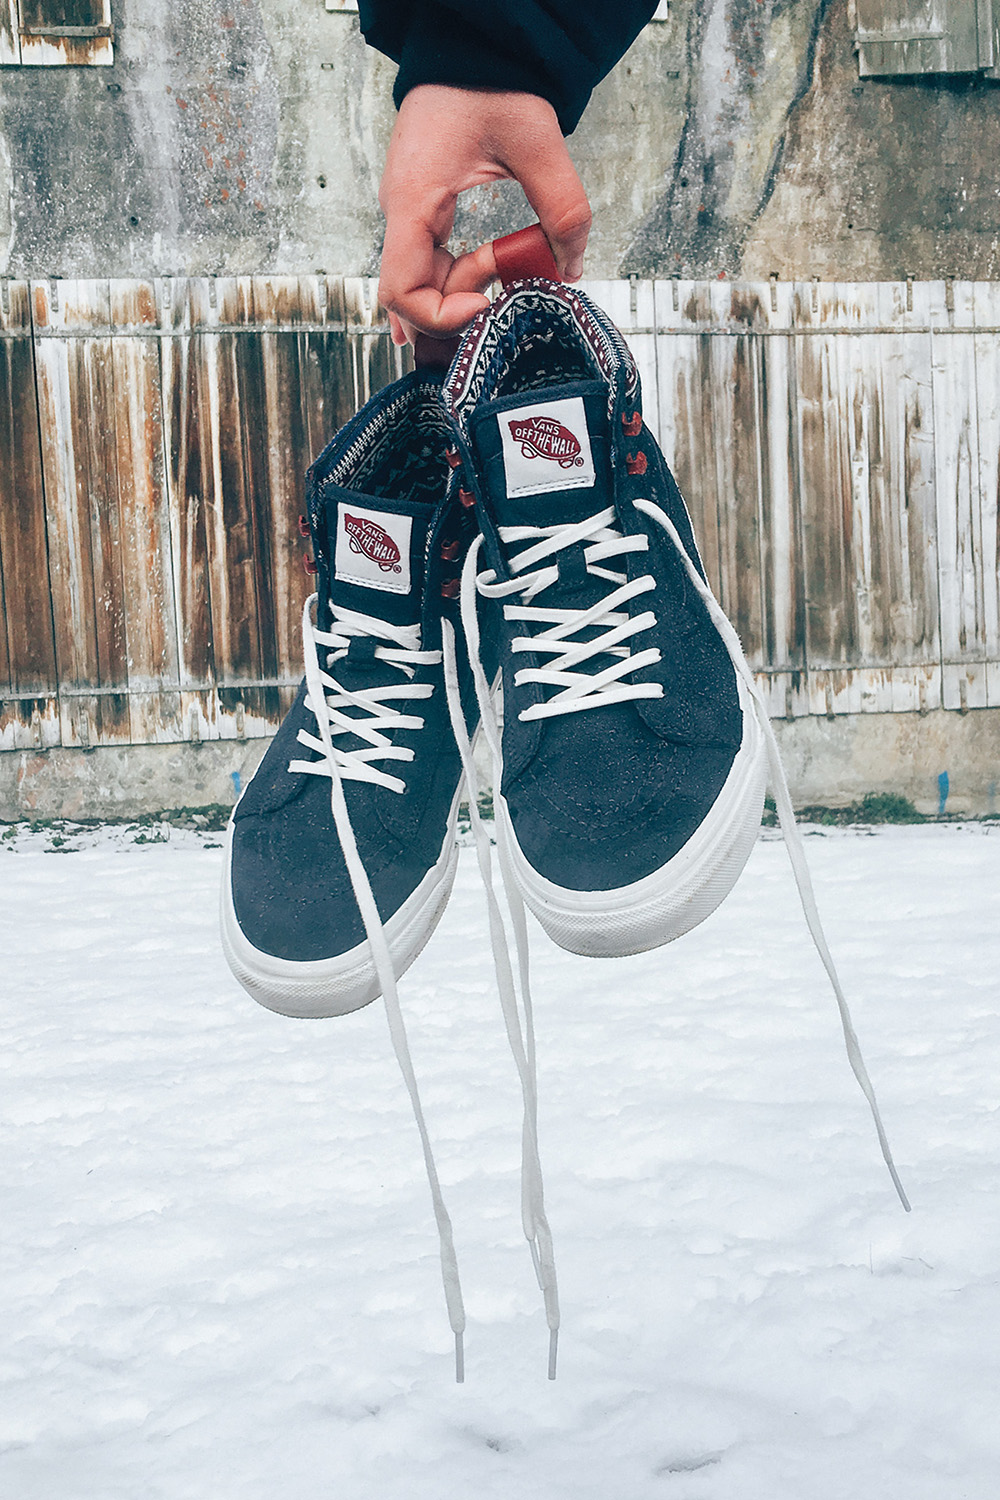 Pump up your winter wardrobe in the All-Weather Vans Sk8-Hi MTE in Parisian  Night Blanc De Blanc. Shop these and more winter-ready ... b2638f5b5